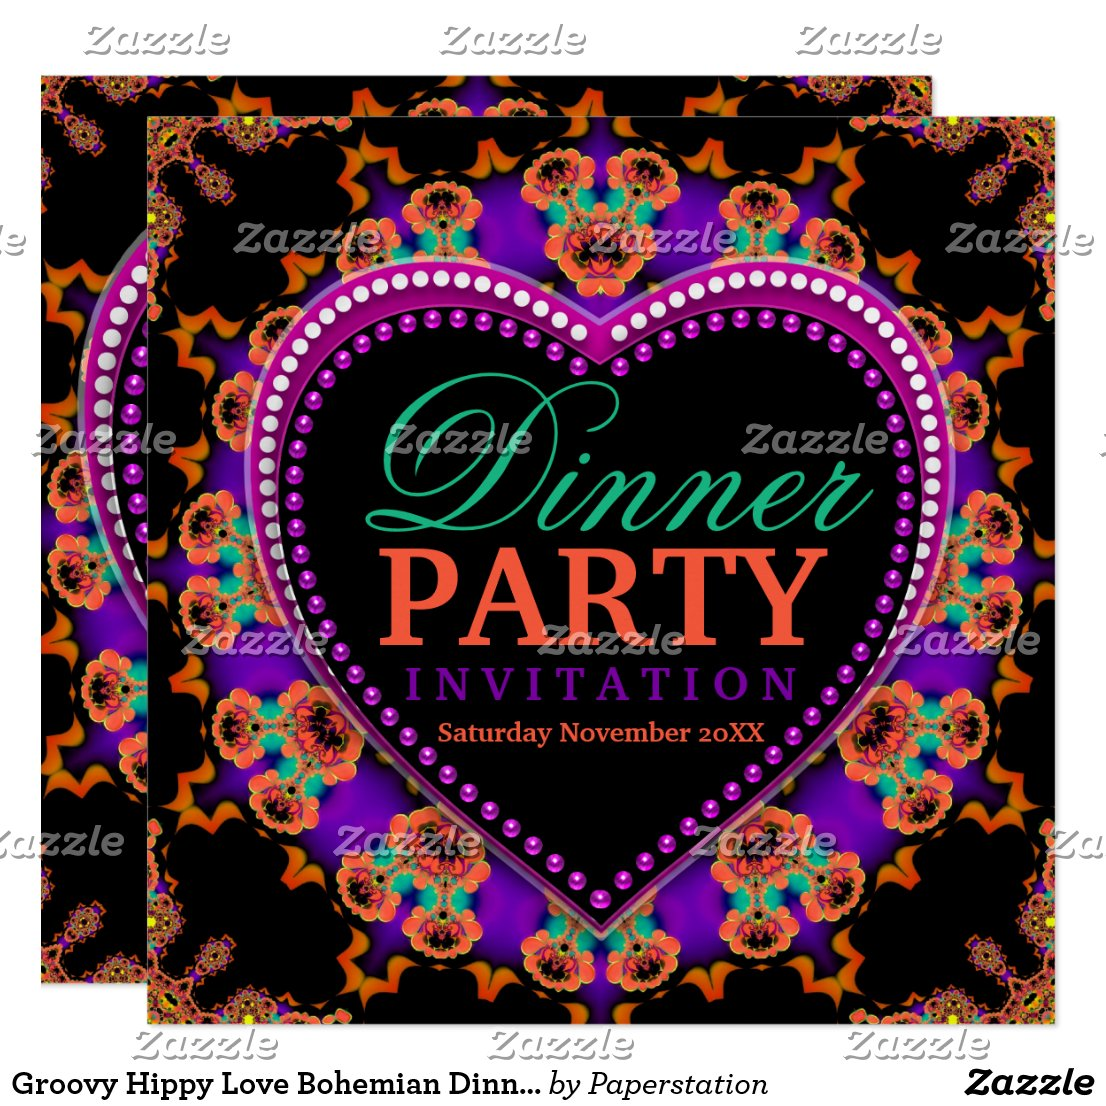 Groovy Hippy Love Bohemian Dinner Party Card by Paperstation